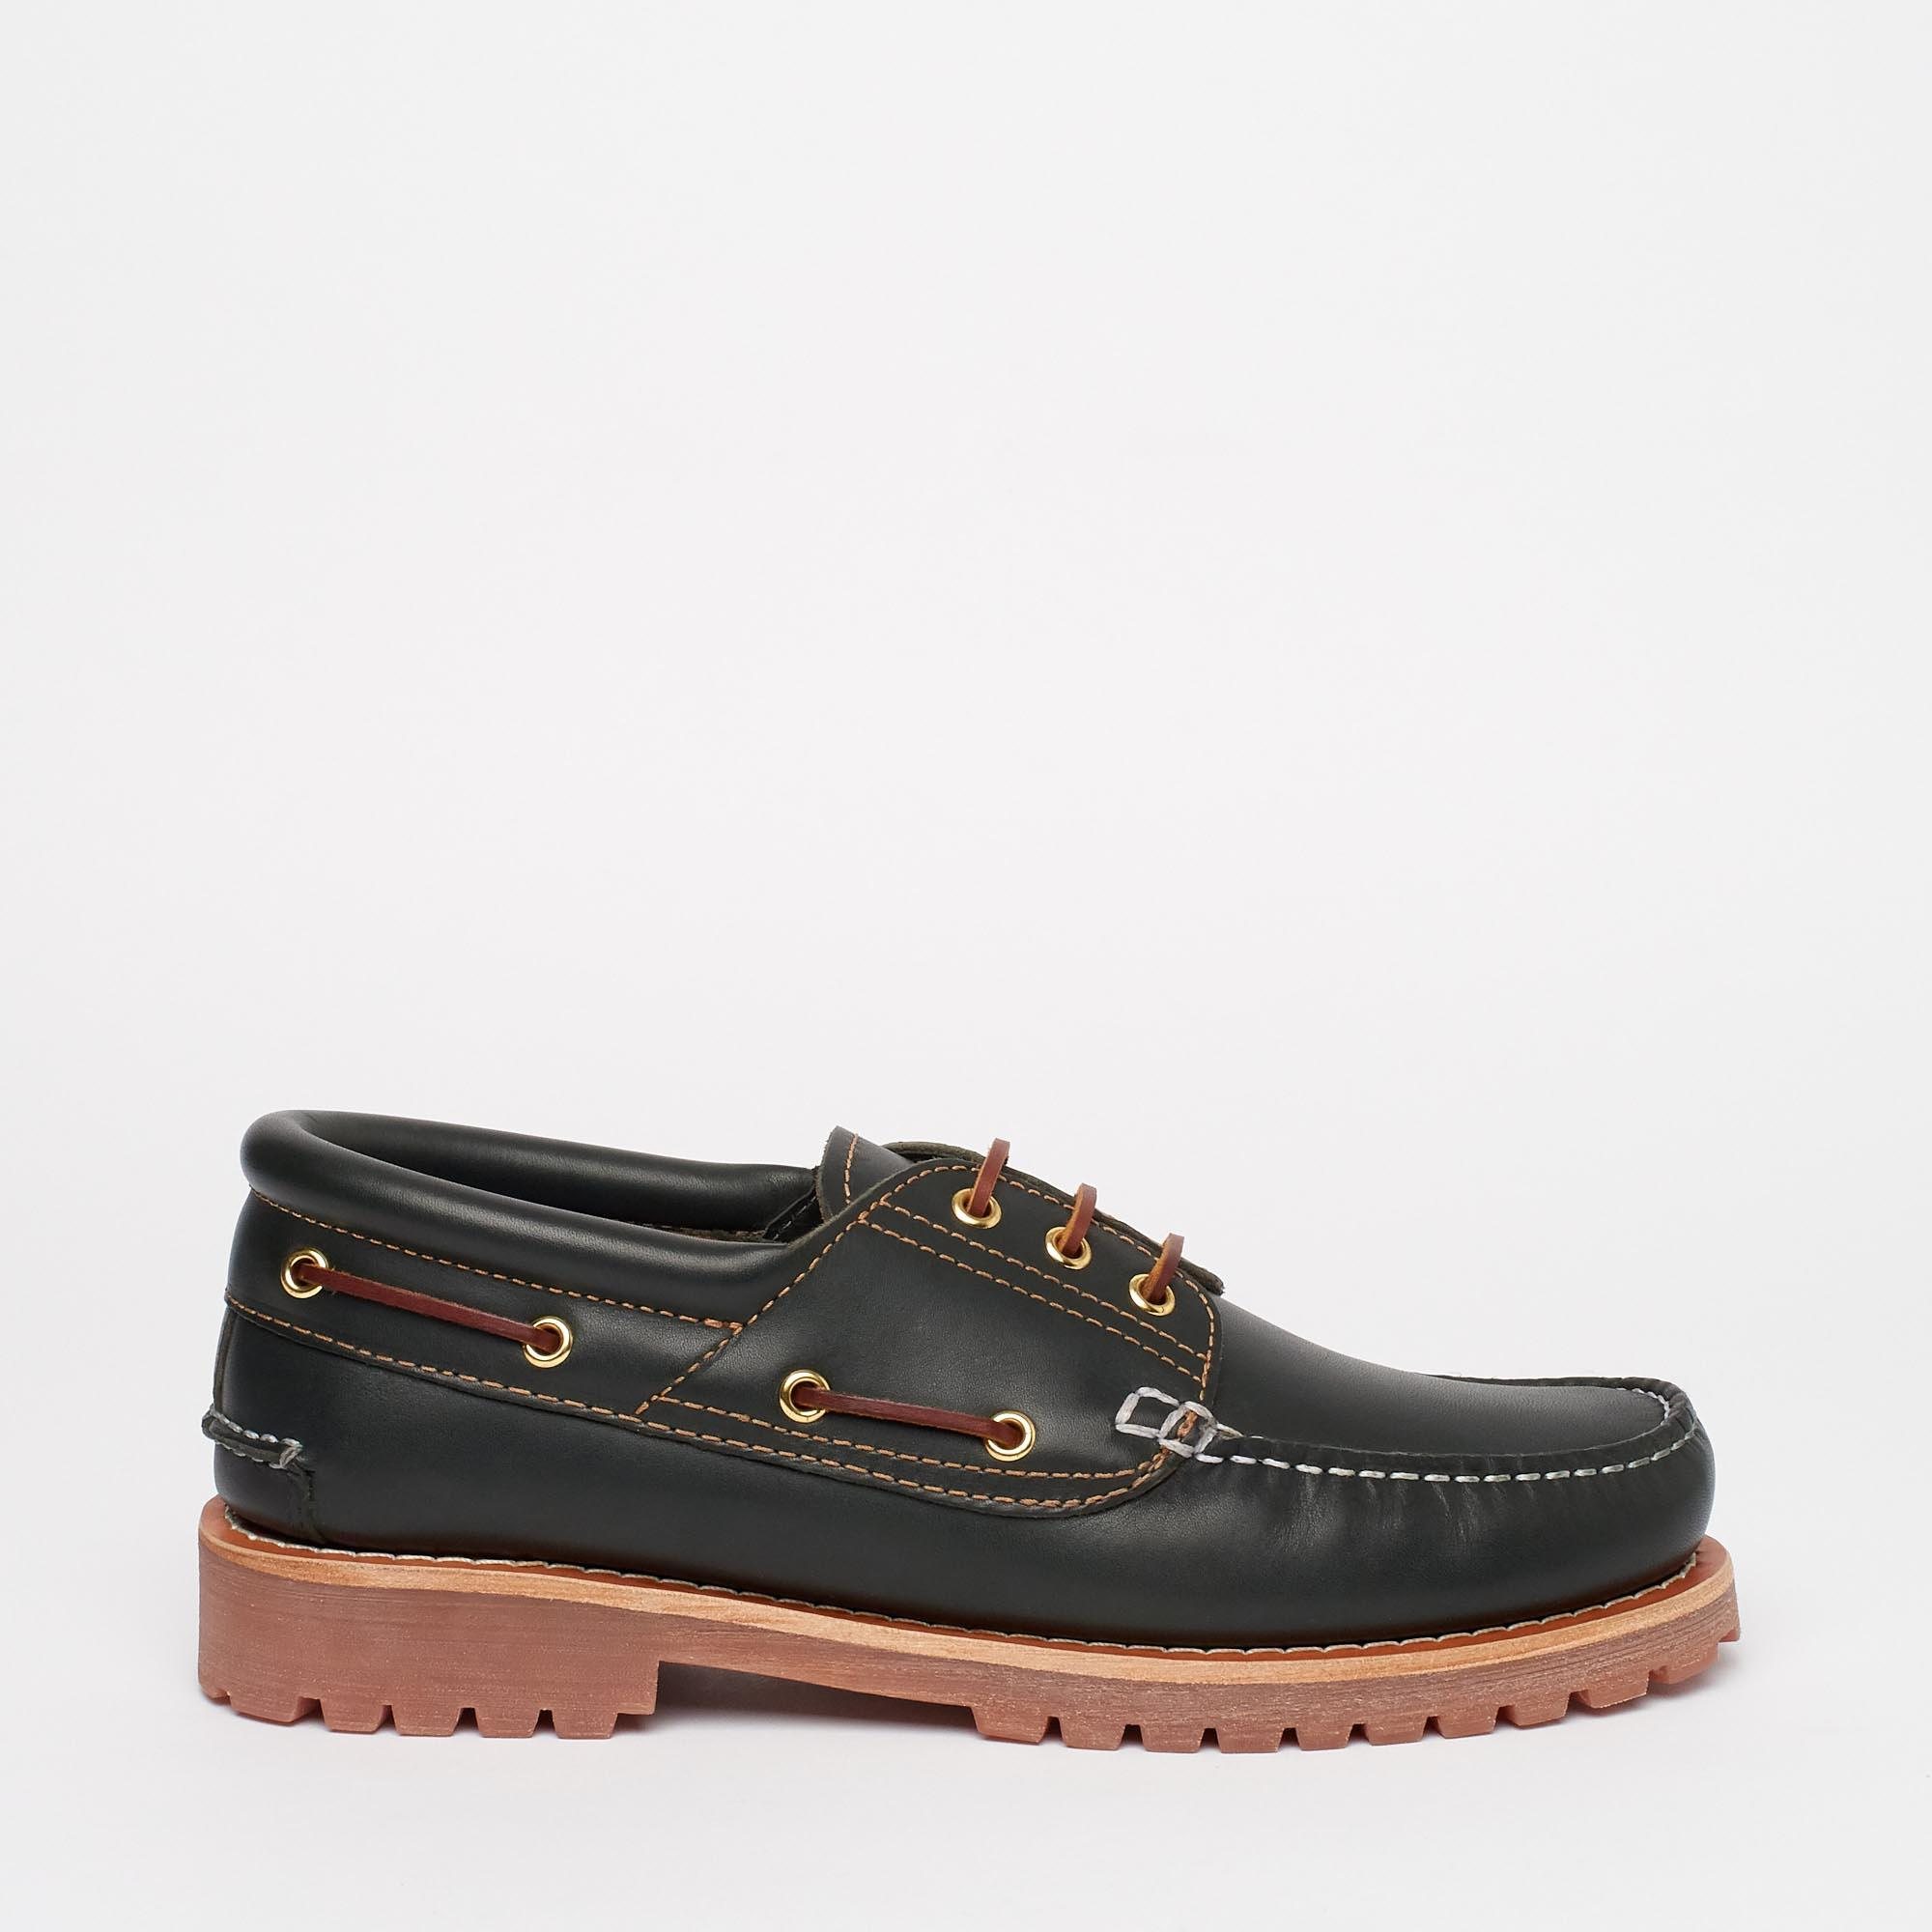 Navy Blue 'Samuel' Heavy Boat Shoes by